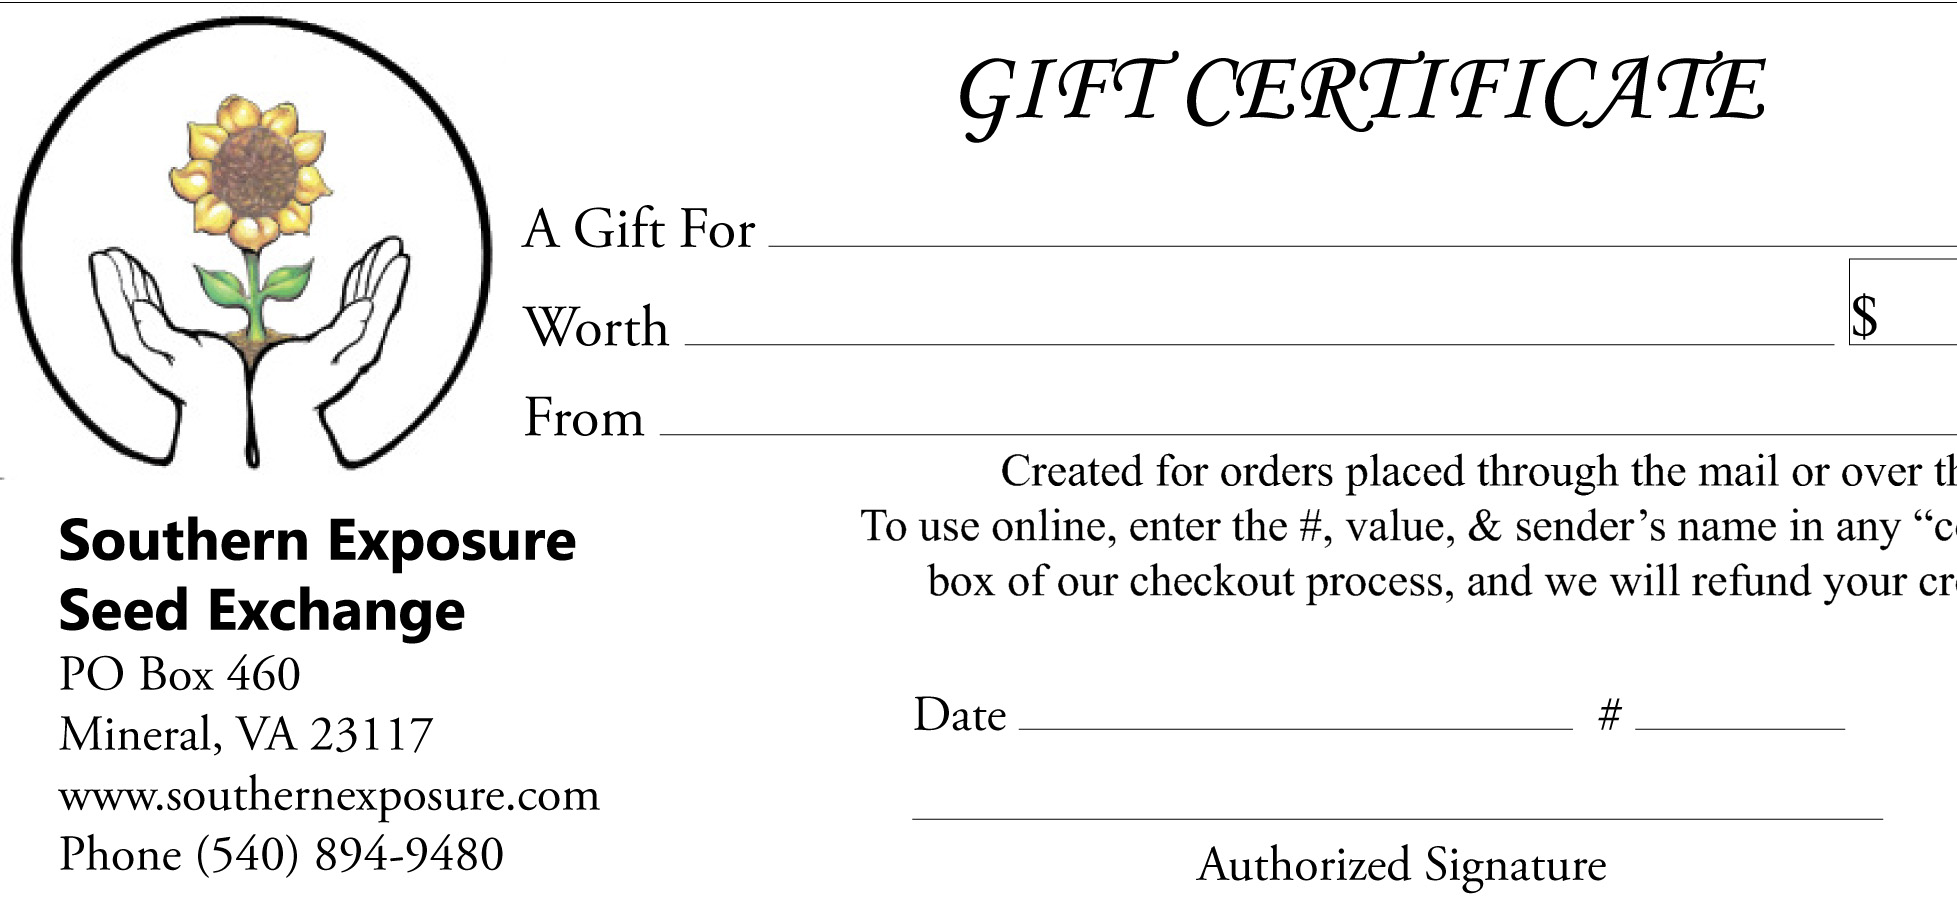 1 paper gift certificate unit southern exposure seed exchange